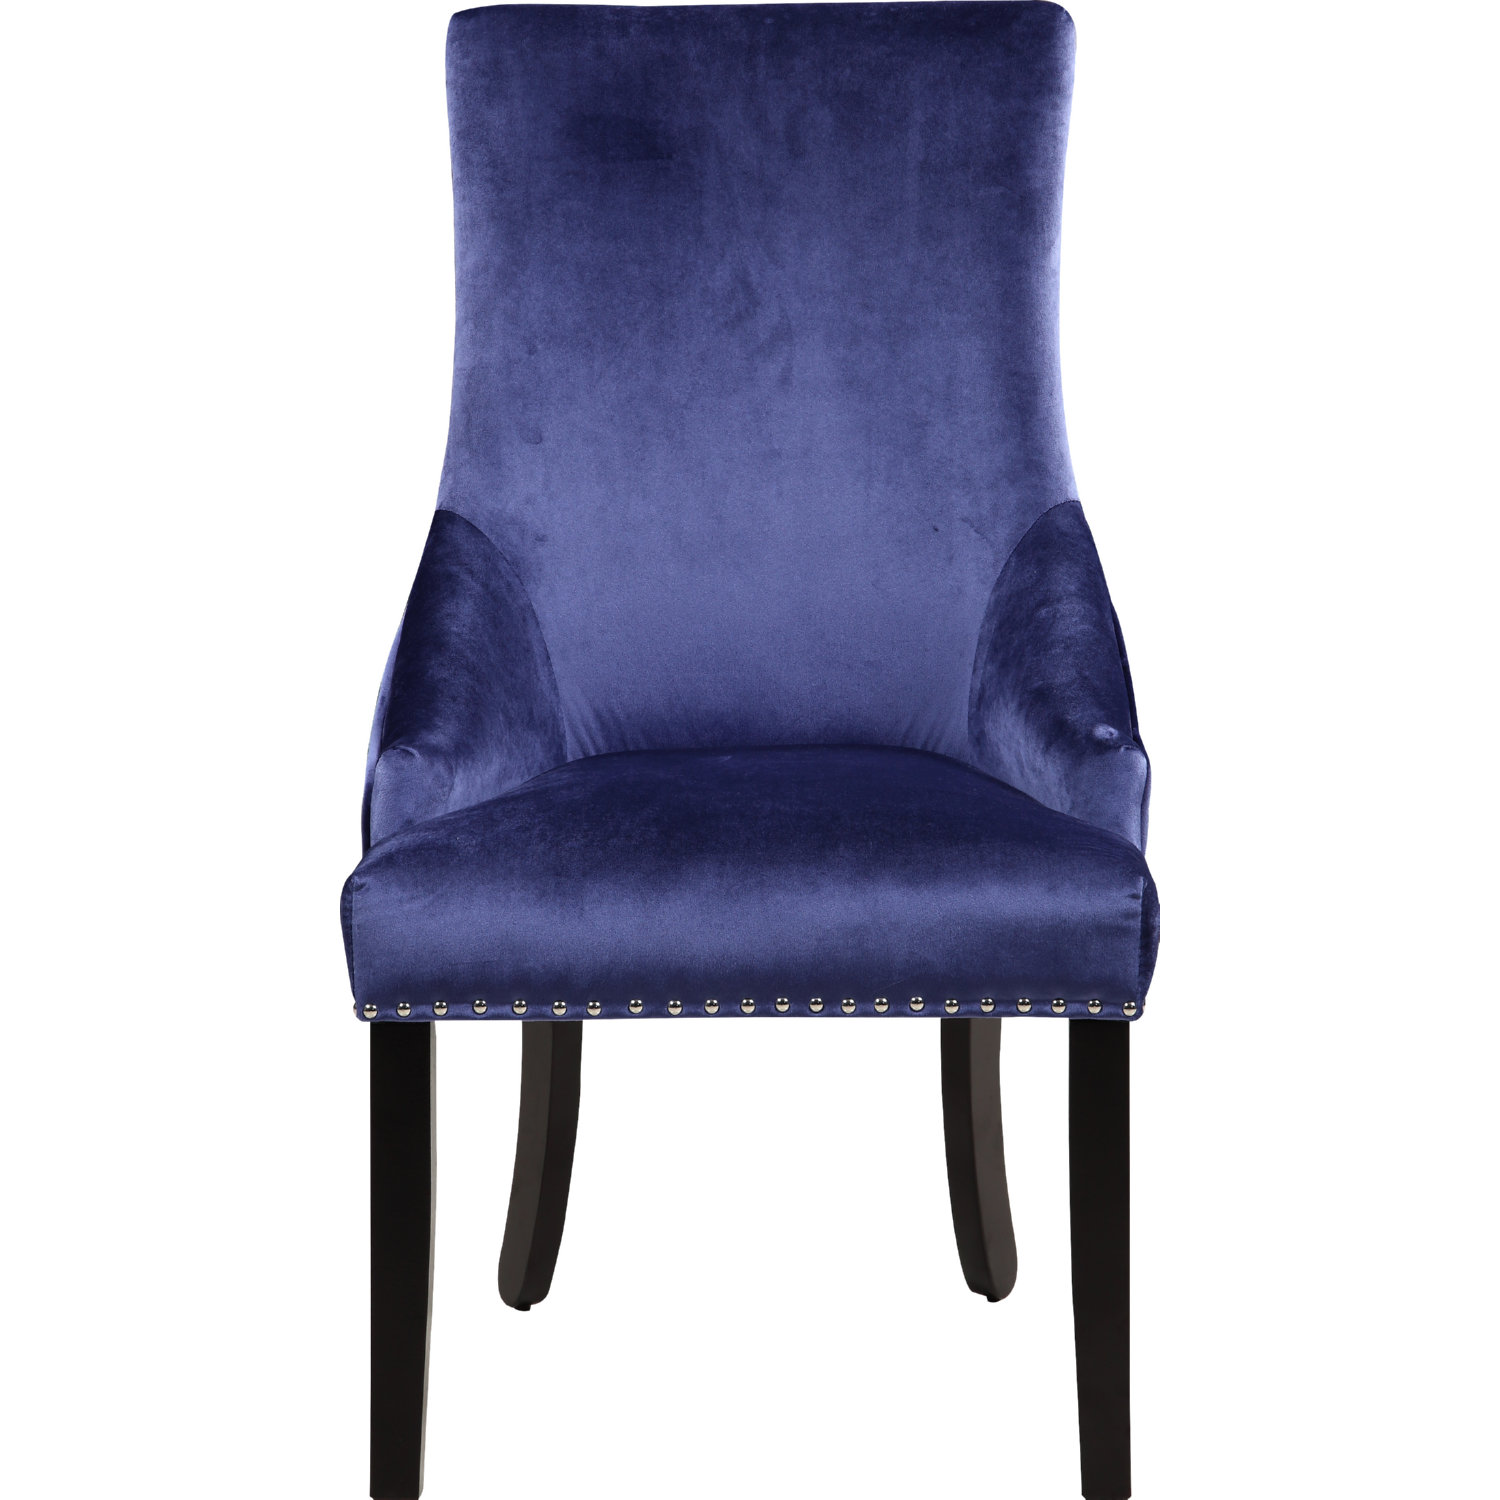 Machla Dining Chair In Navy Blue Velvet W Diamond Tufted Back Set Of 2 By Chic Home